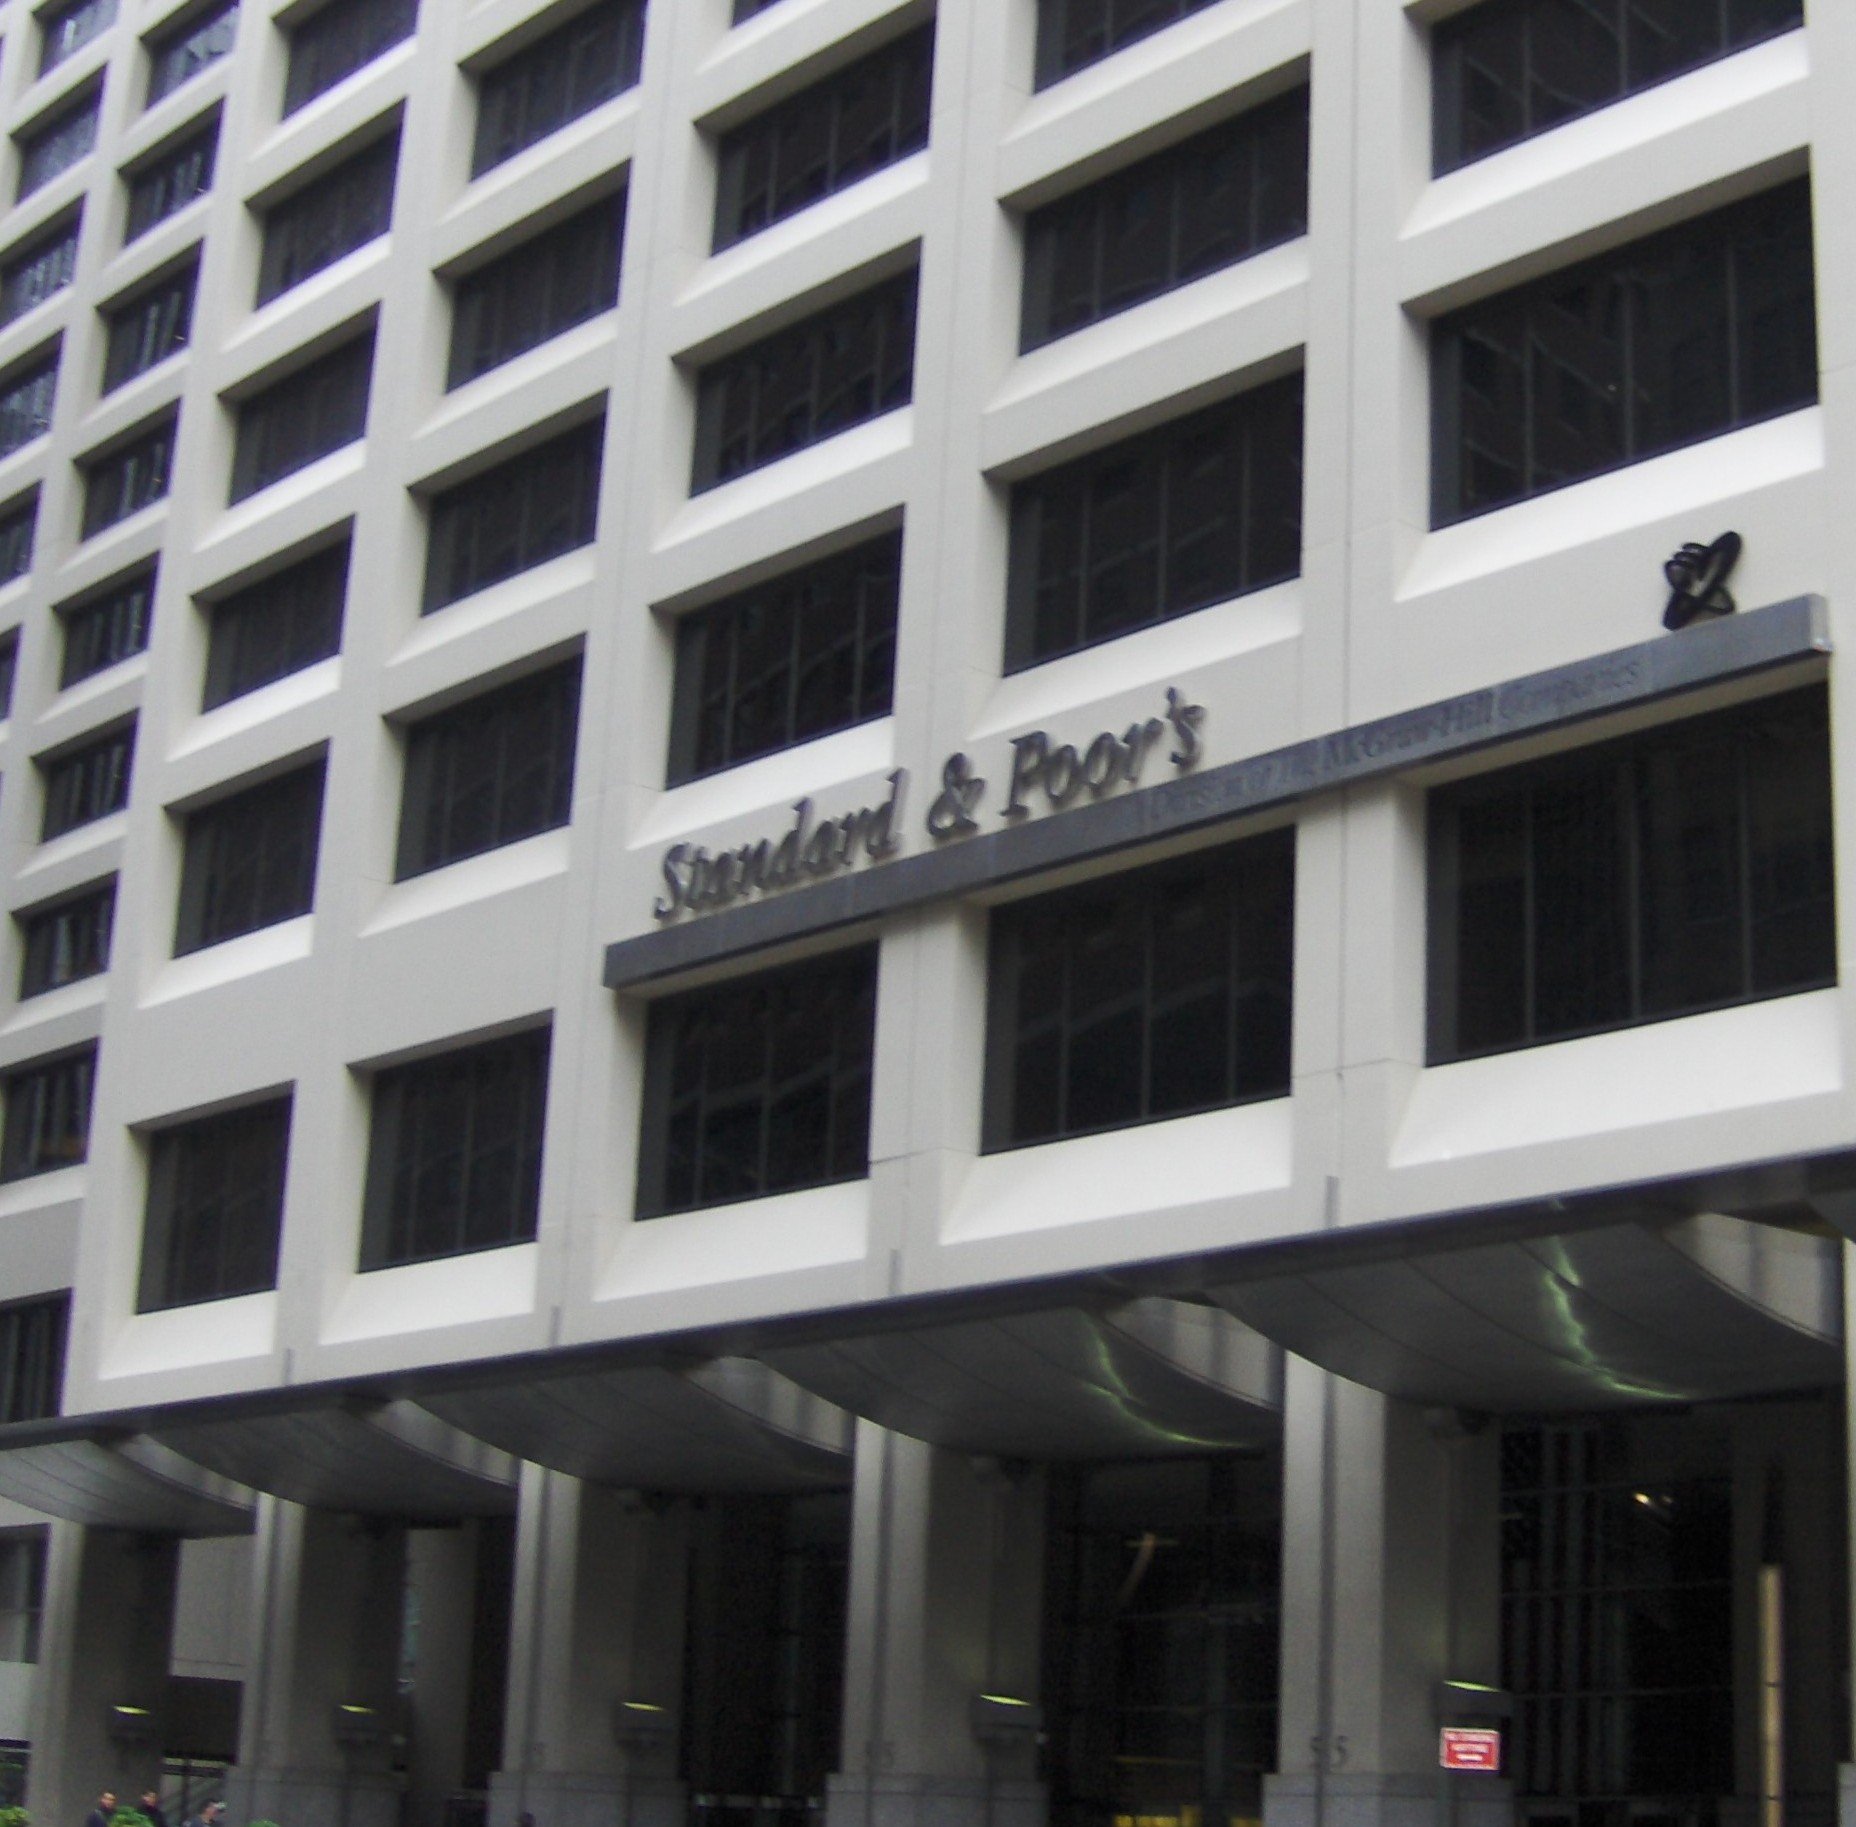 S&P, Standard and Poor's Rating